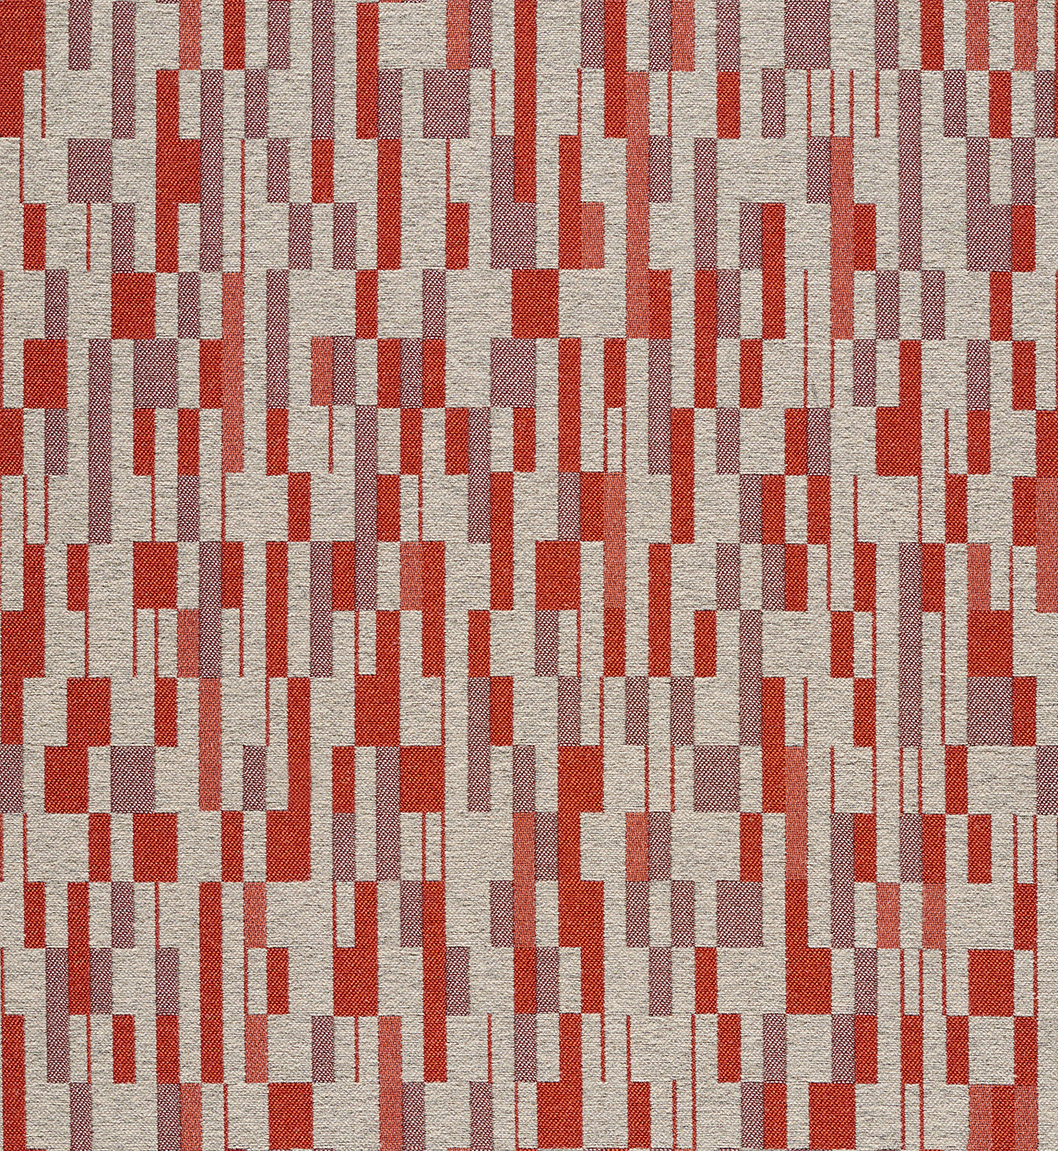 Modulus - Masonry - 4057 - 03 Tileable Swatches